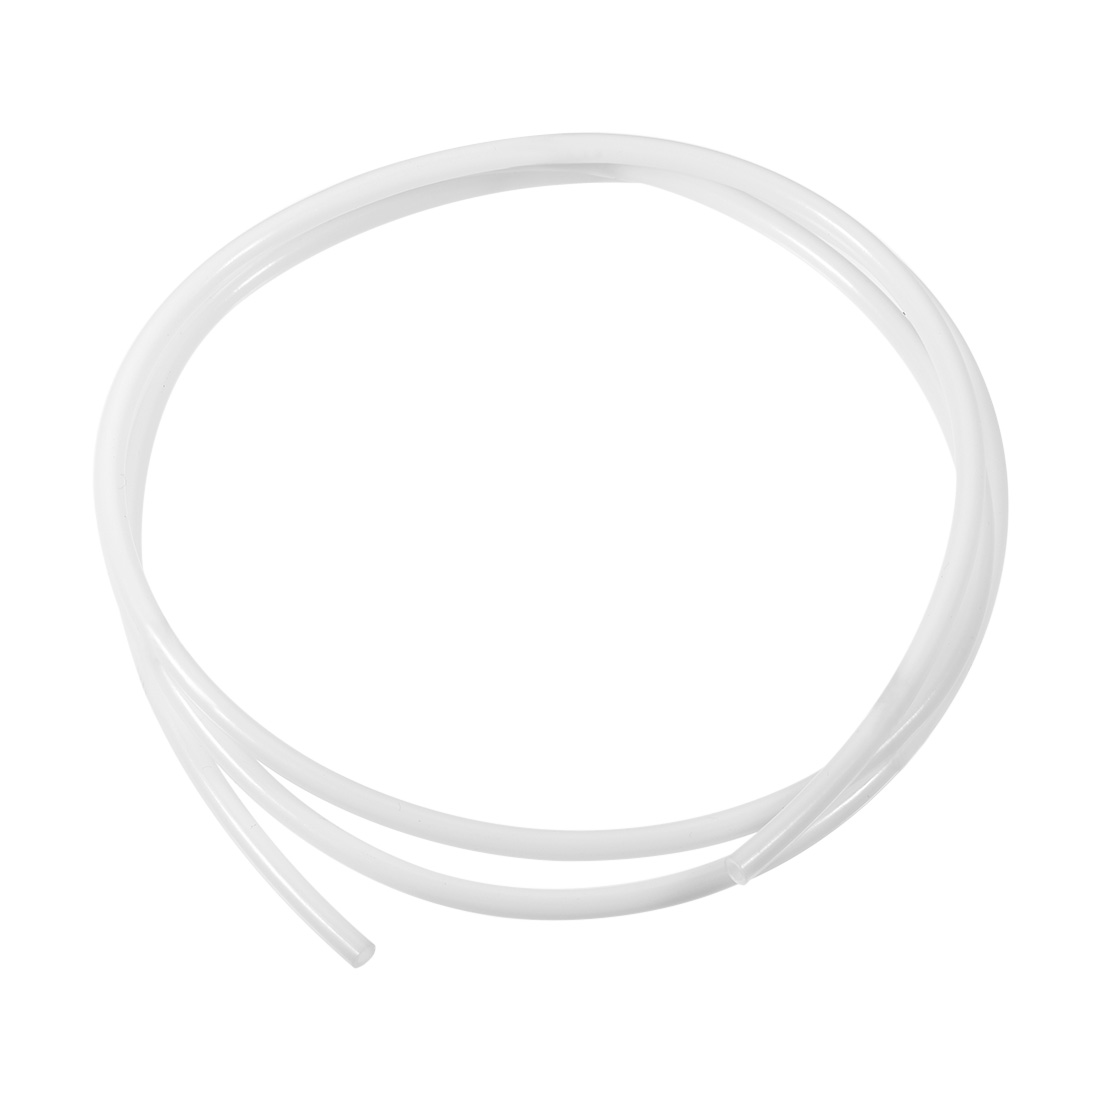 PTFE Tube 4.9Ft - ID 4mm x OD 6mm Fit 3mm Filament for 3D Printer White